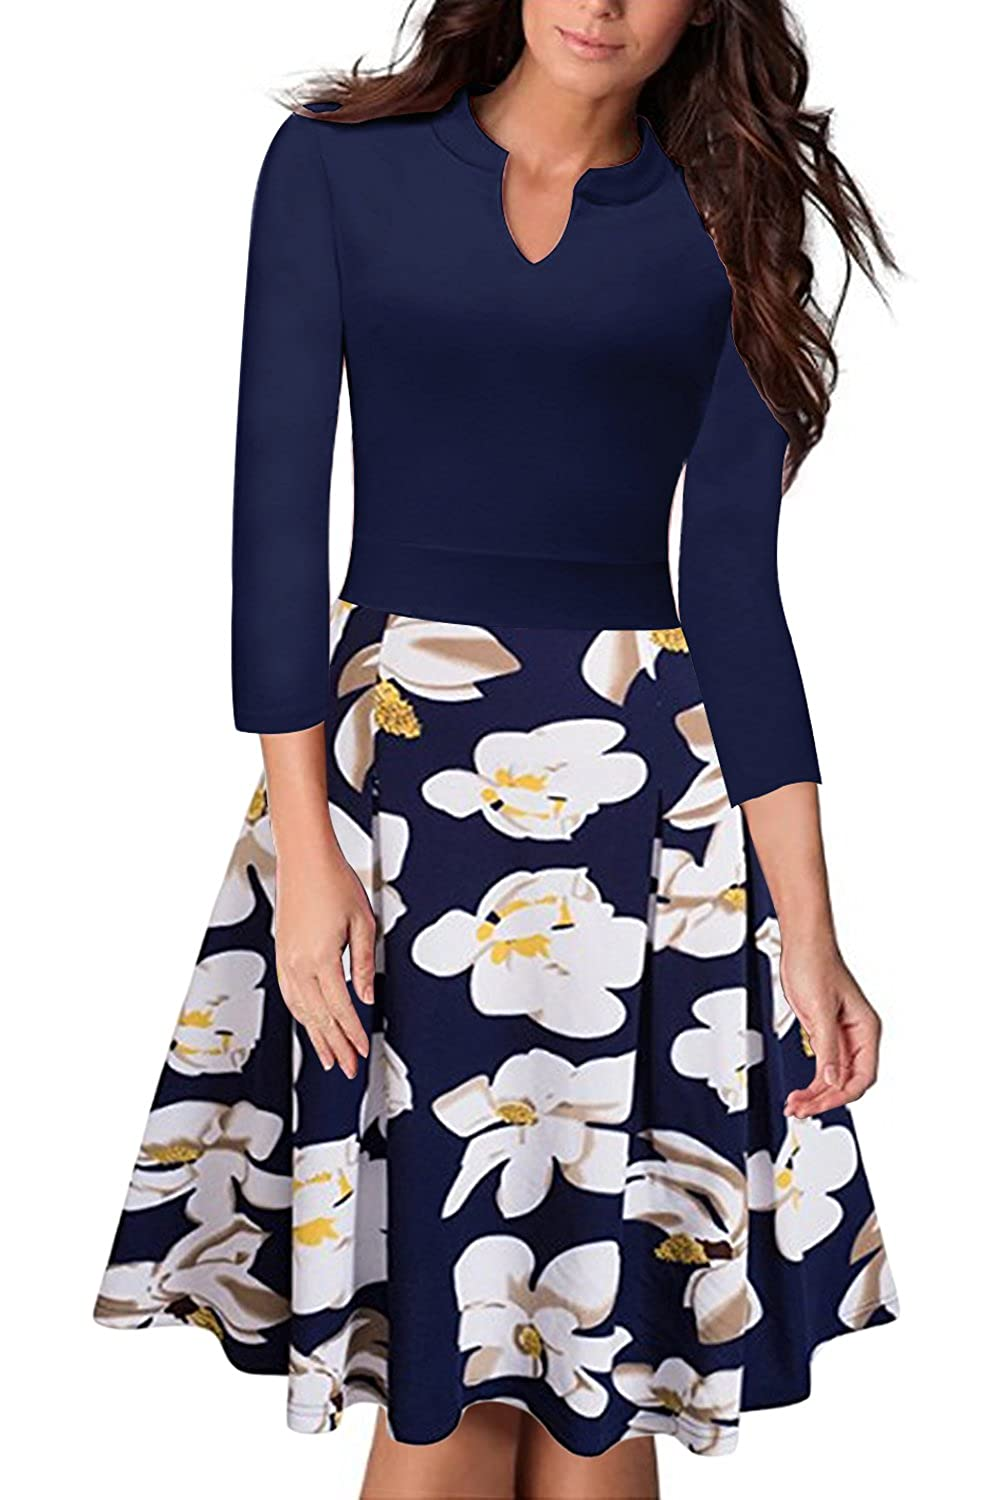 b981a1e31cdb9 Fashion Trendy Design Dress for Girls and Women Style: Chic Official Wear  to Work Casual Aline Business Cocktail Dress